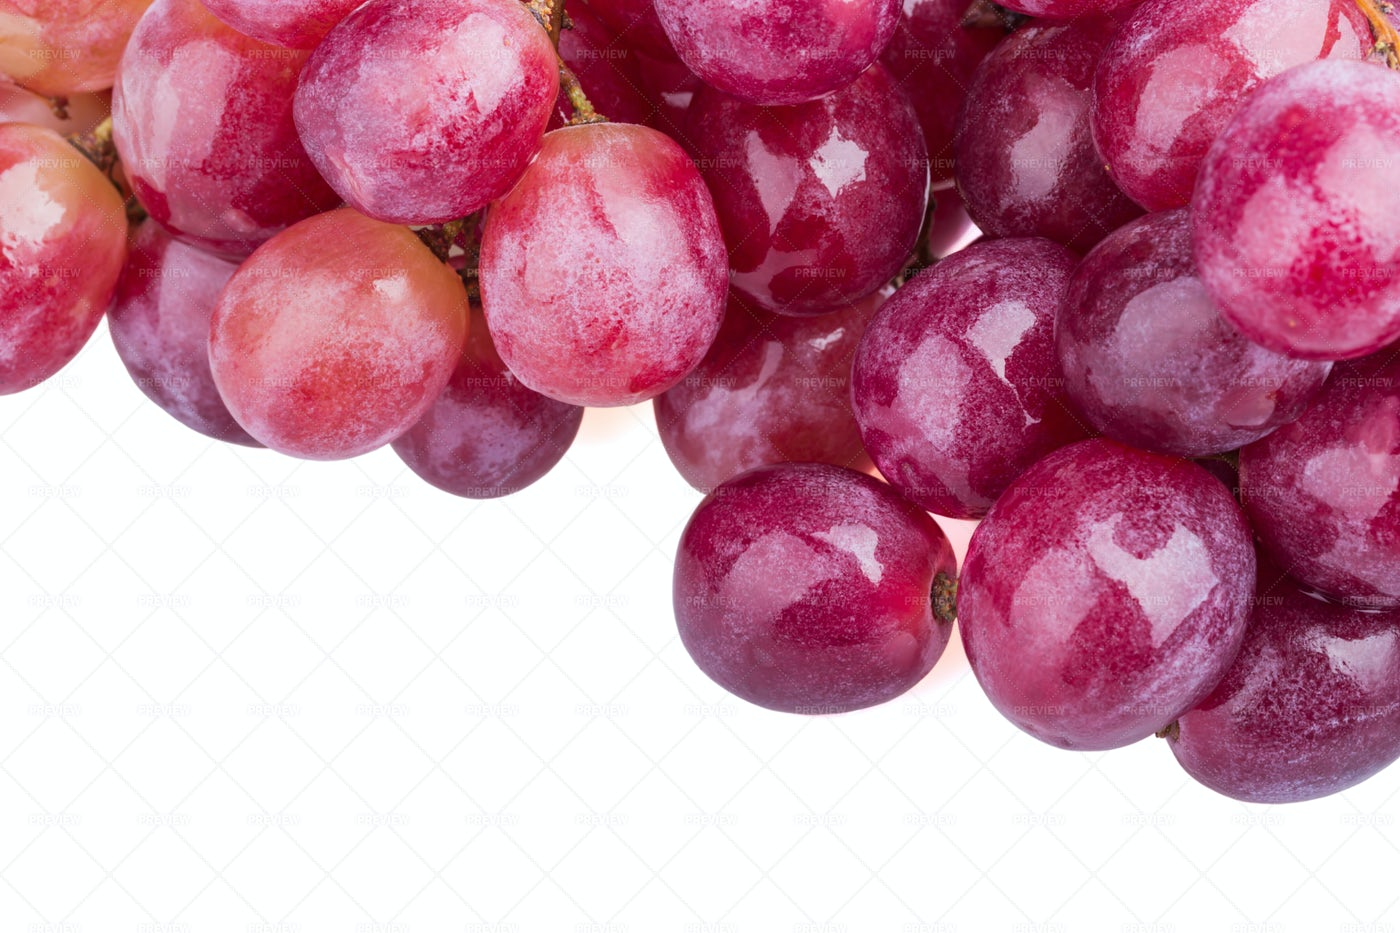 Bunch Of Red Grapes: Stock Photos